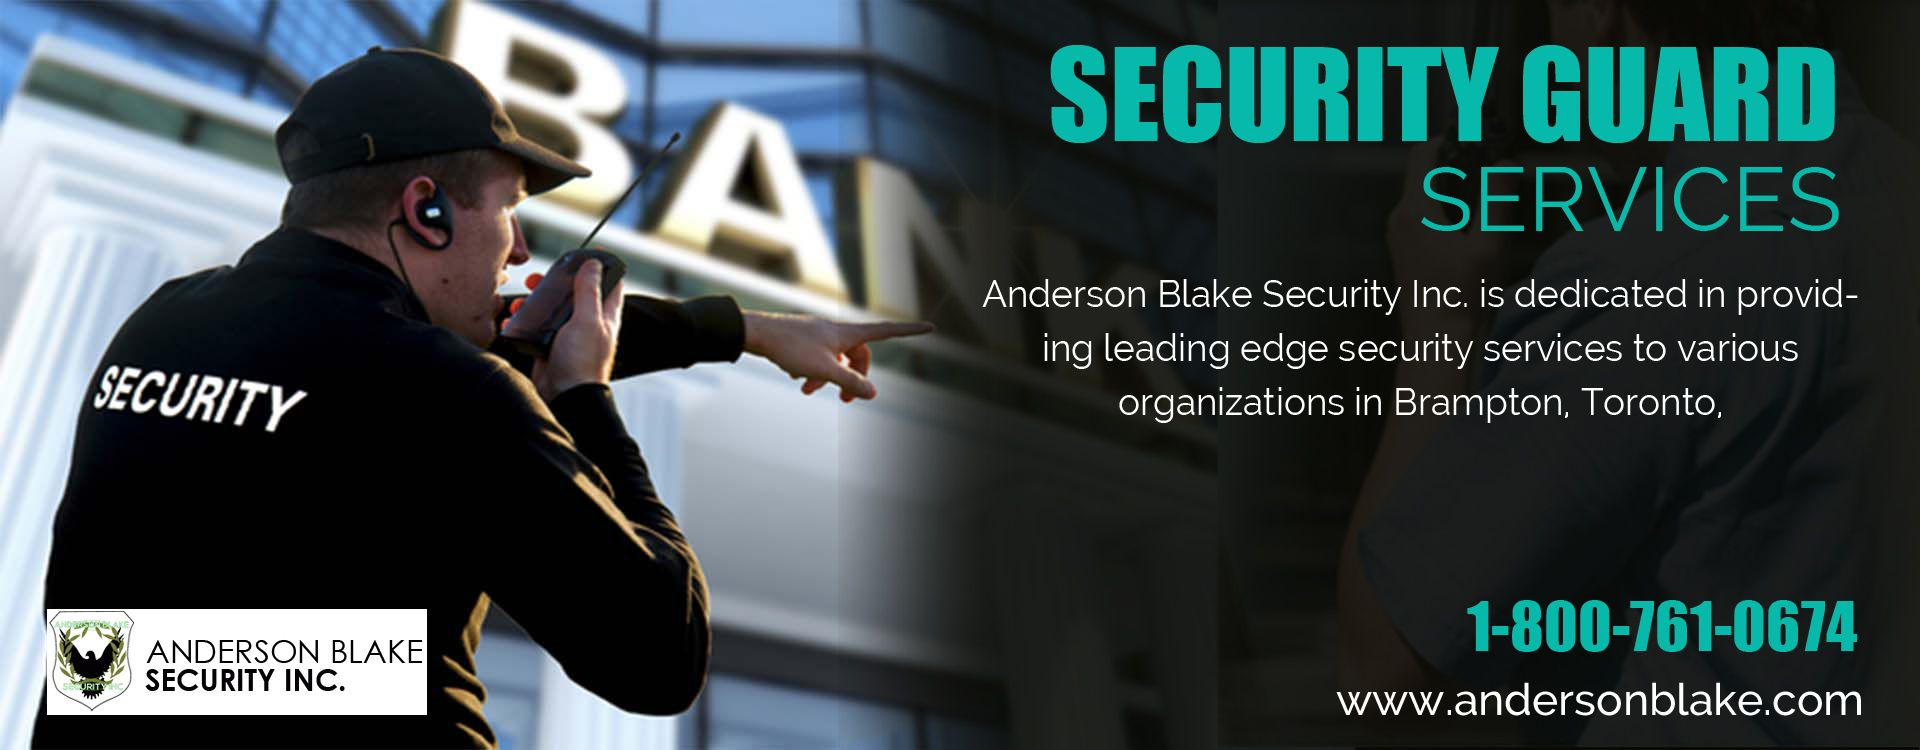 Pin by Anderson Blake Security Inc. on Toronto security